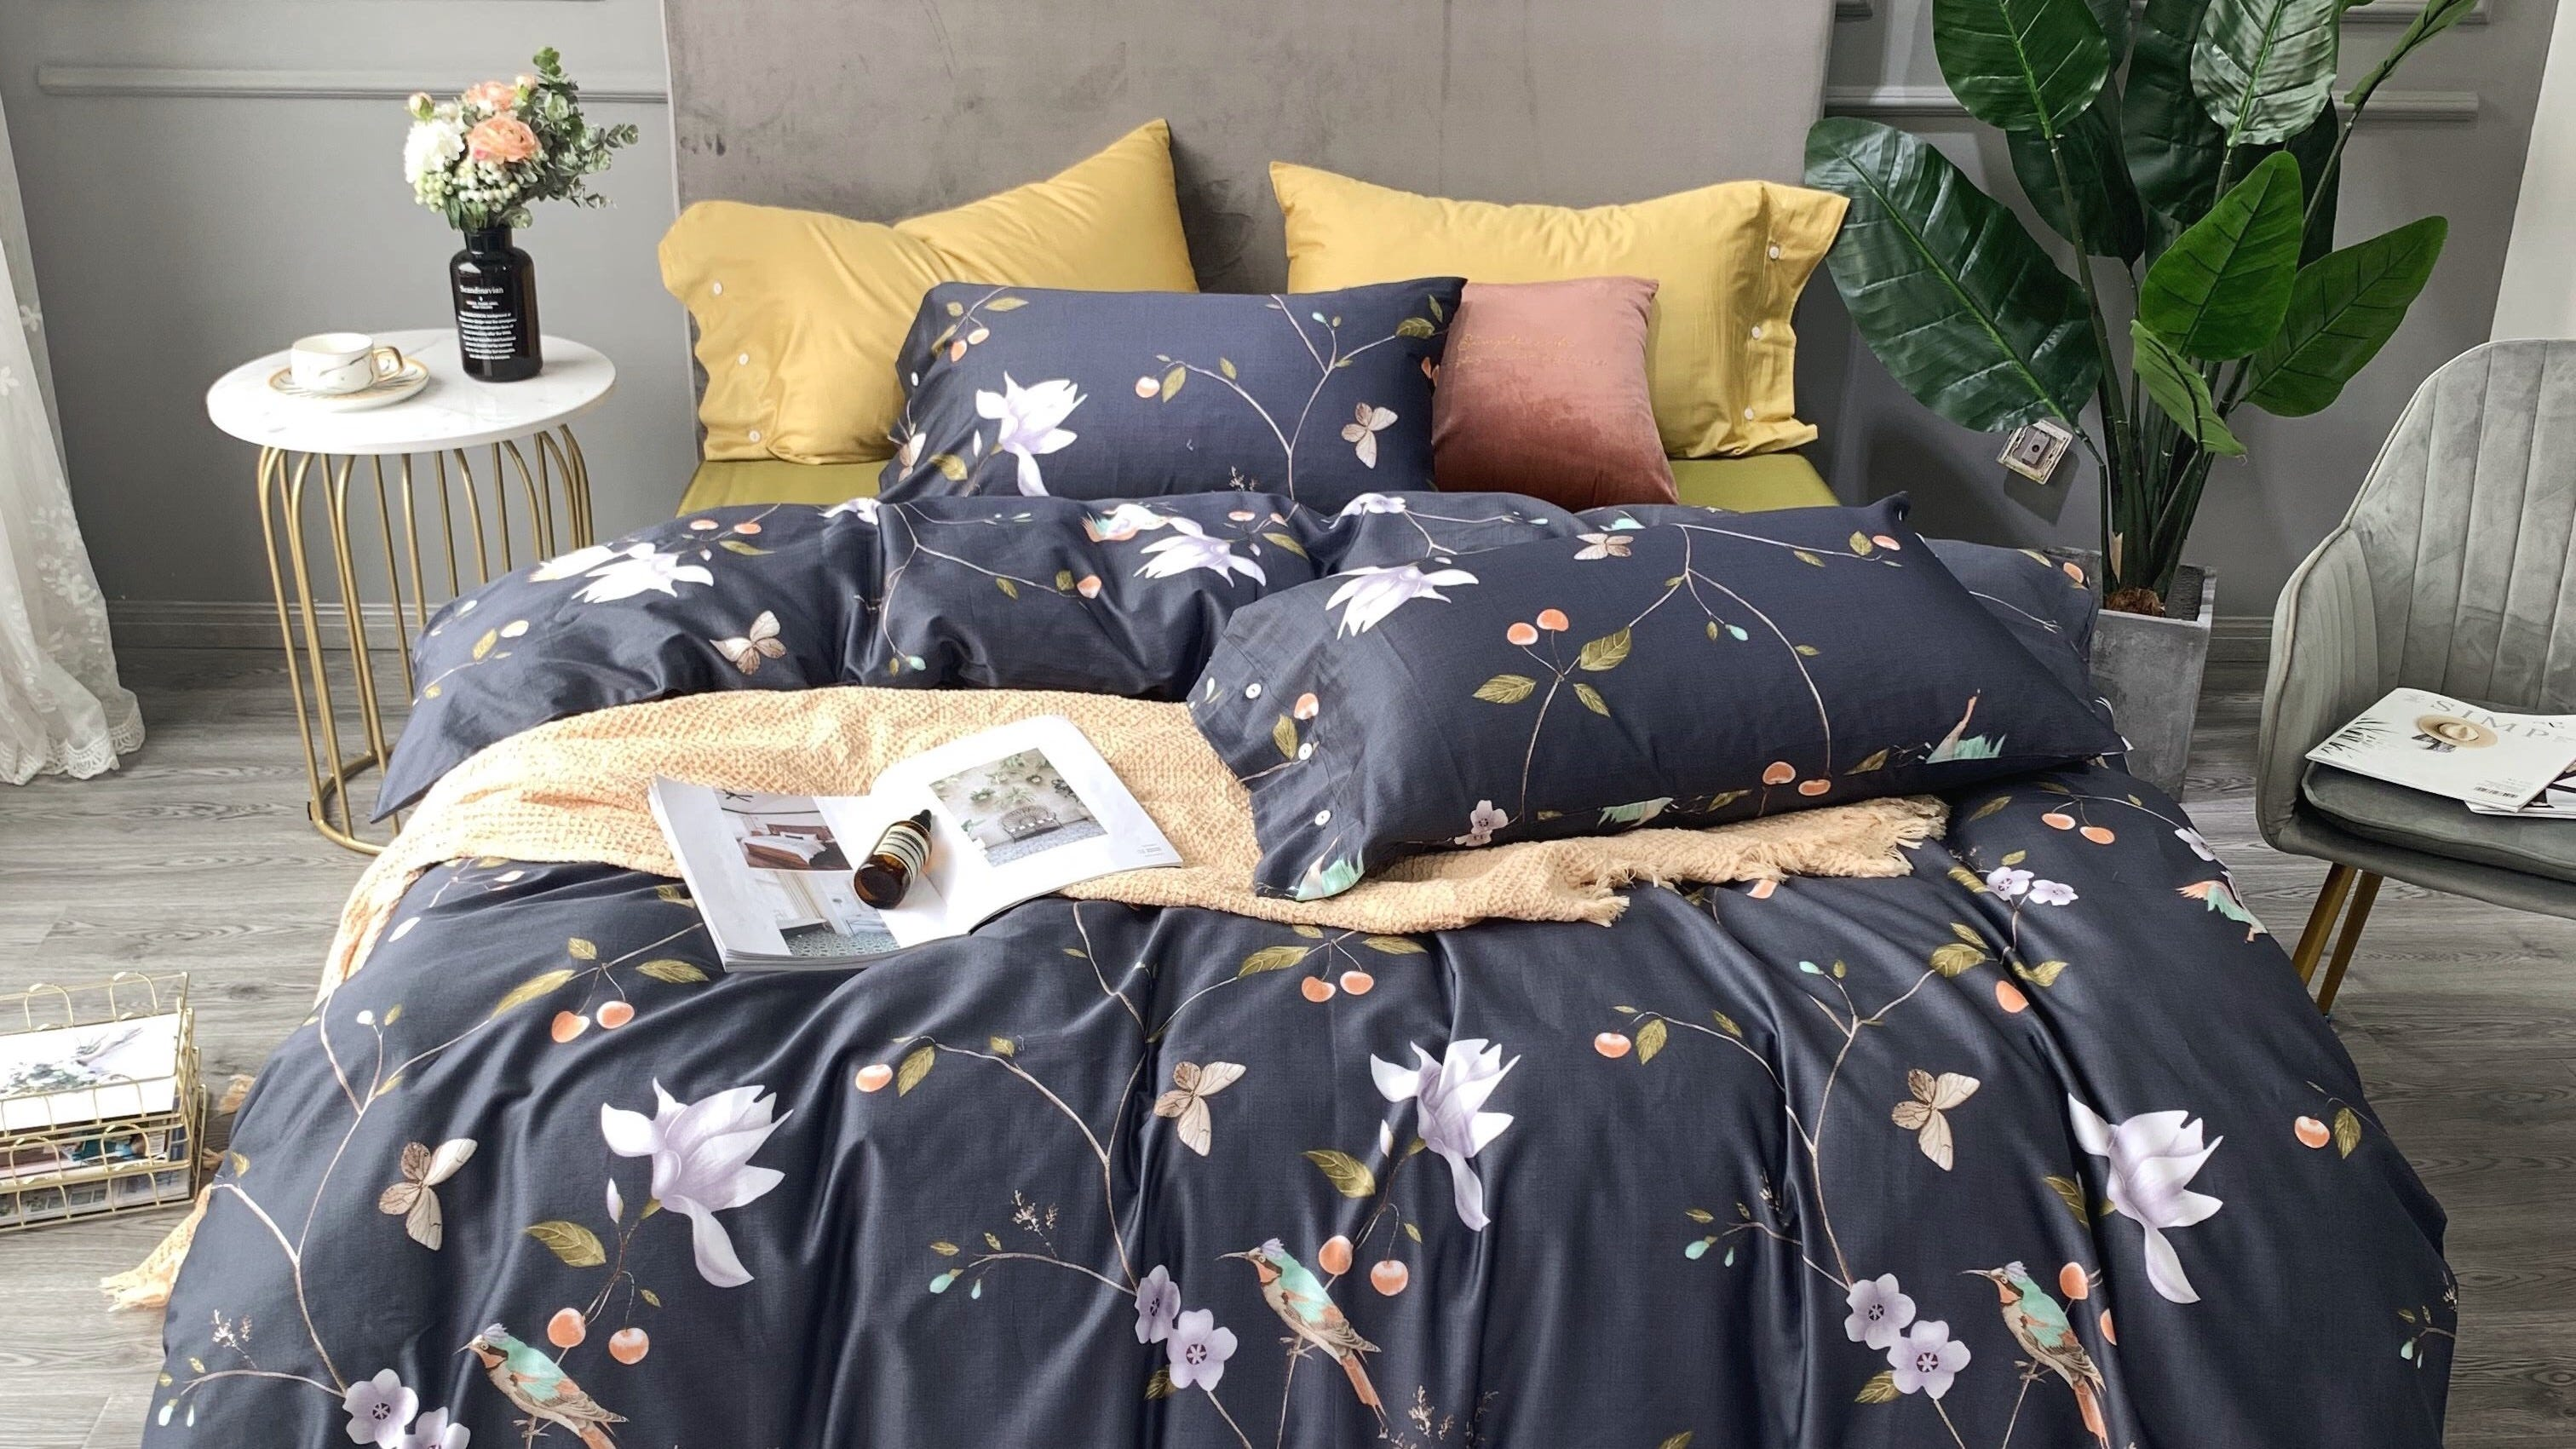 A dark-colored floral duvet and pillows on a bed.